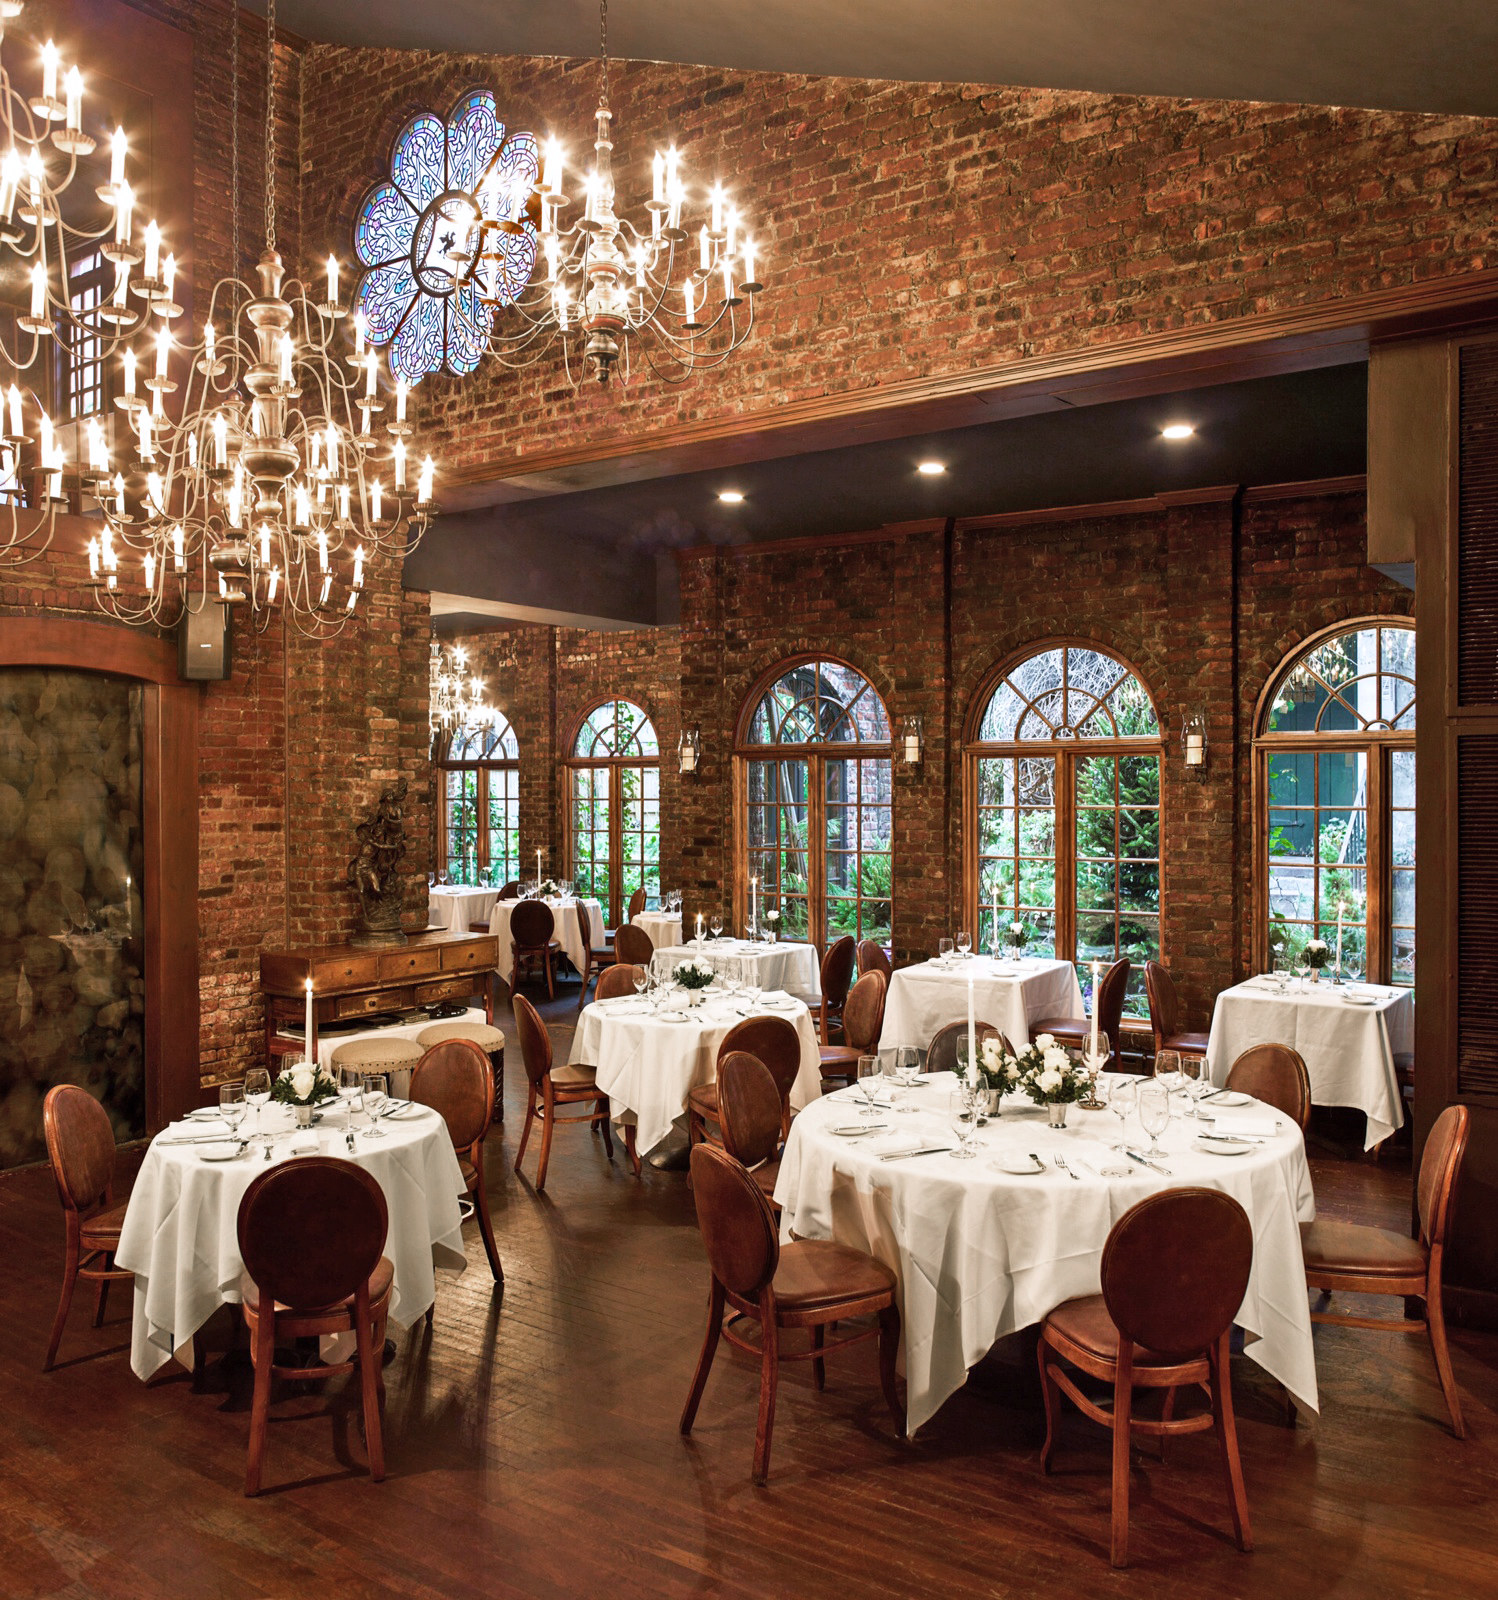 Restraurants: The Most Romantic Restaurants In The World